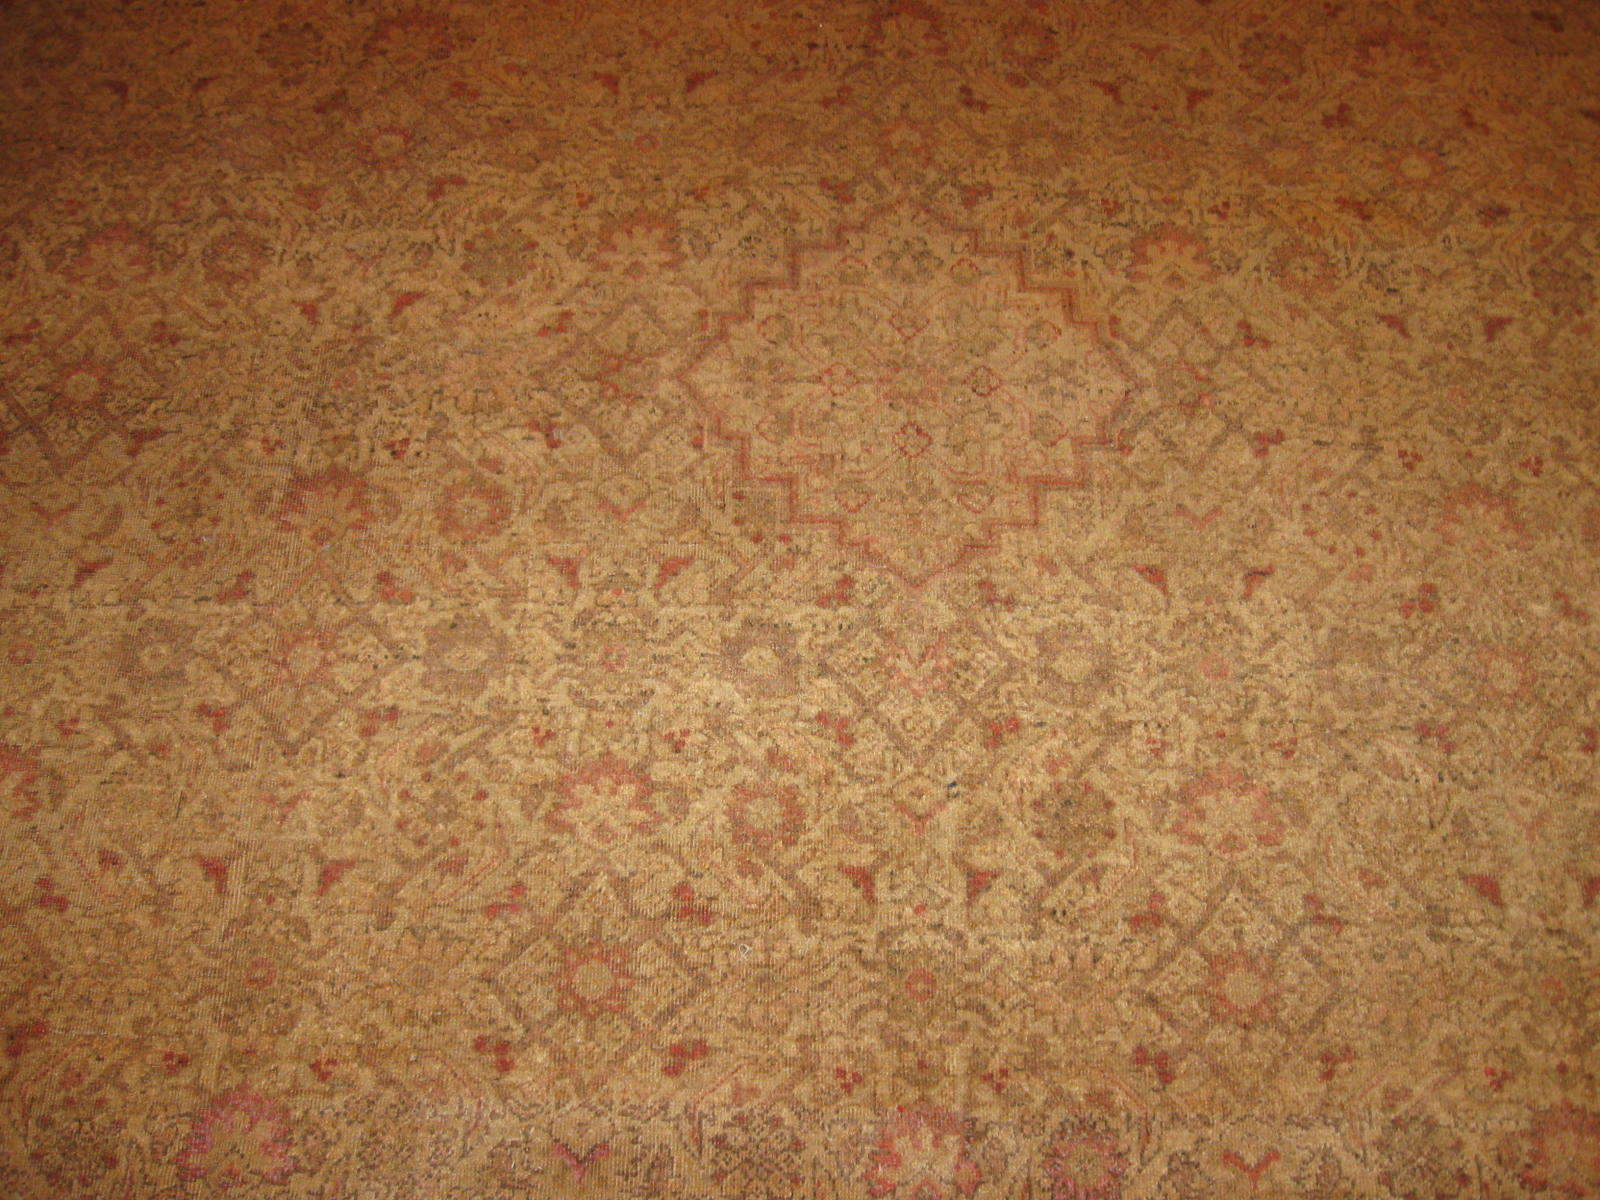 24381 antique India Amritsar carpet 9,2 x 12 -2